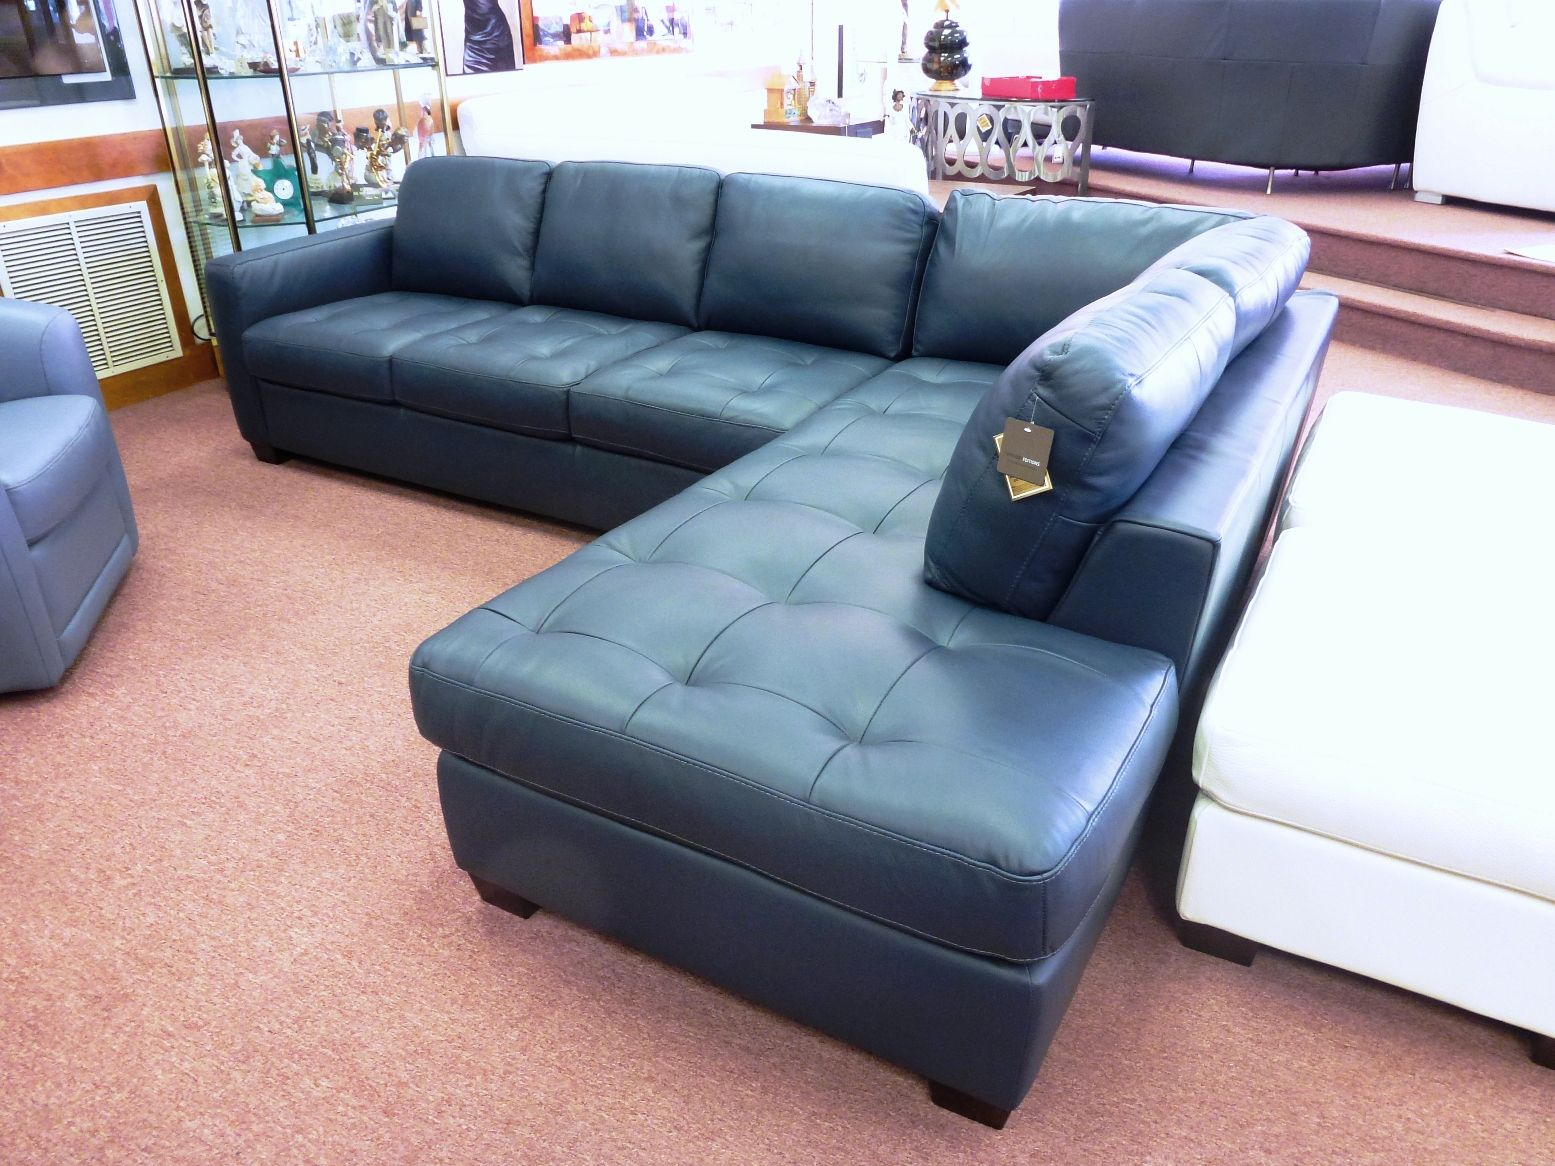 Awesome Navy Blue Leather Sofa Bed Trend Navy Blue Leather Sofa